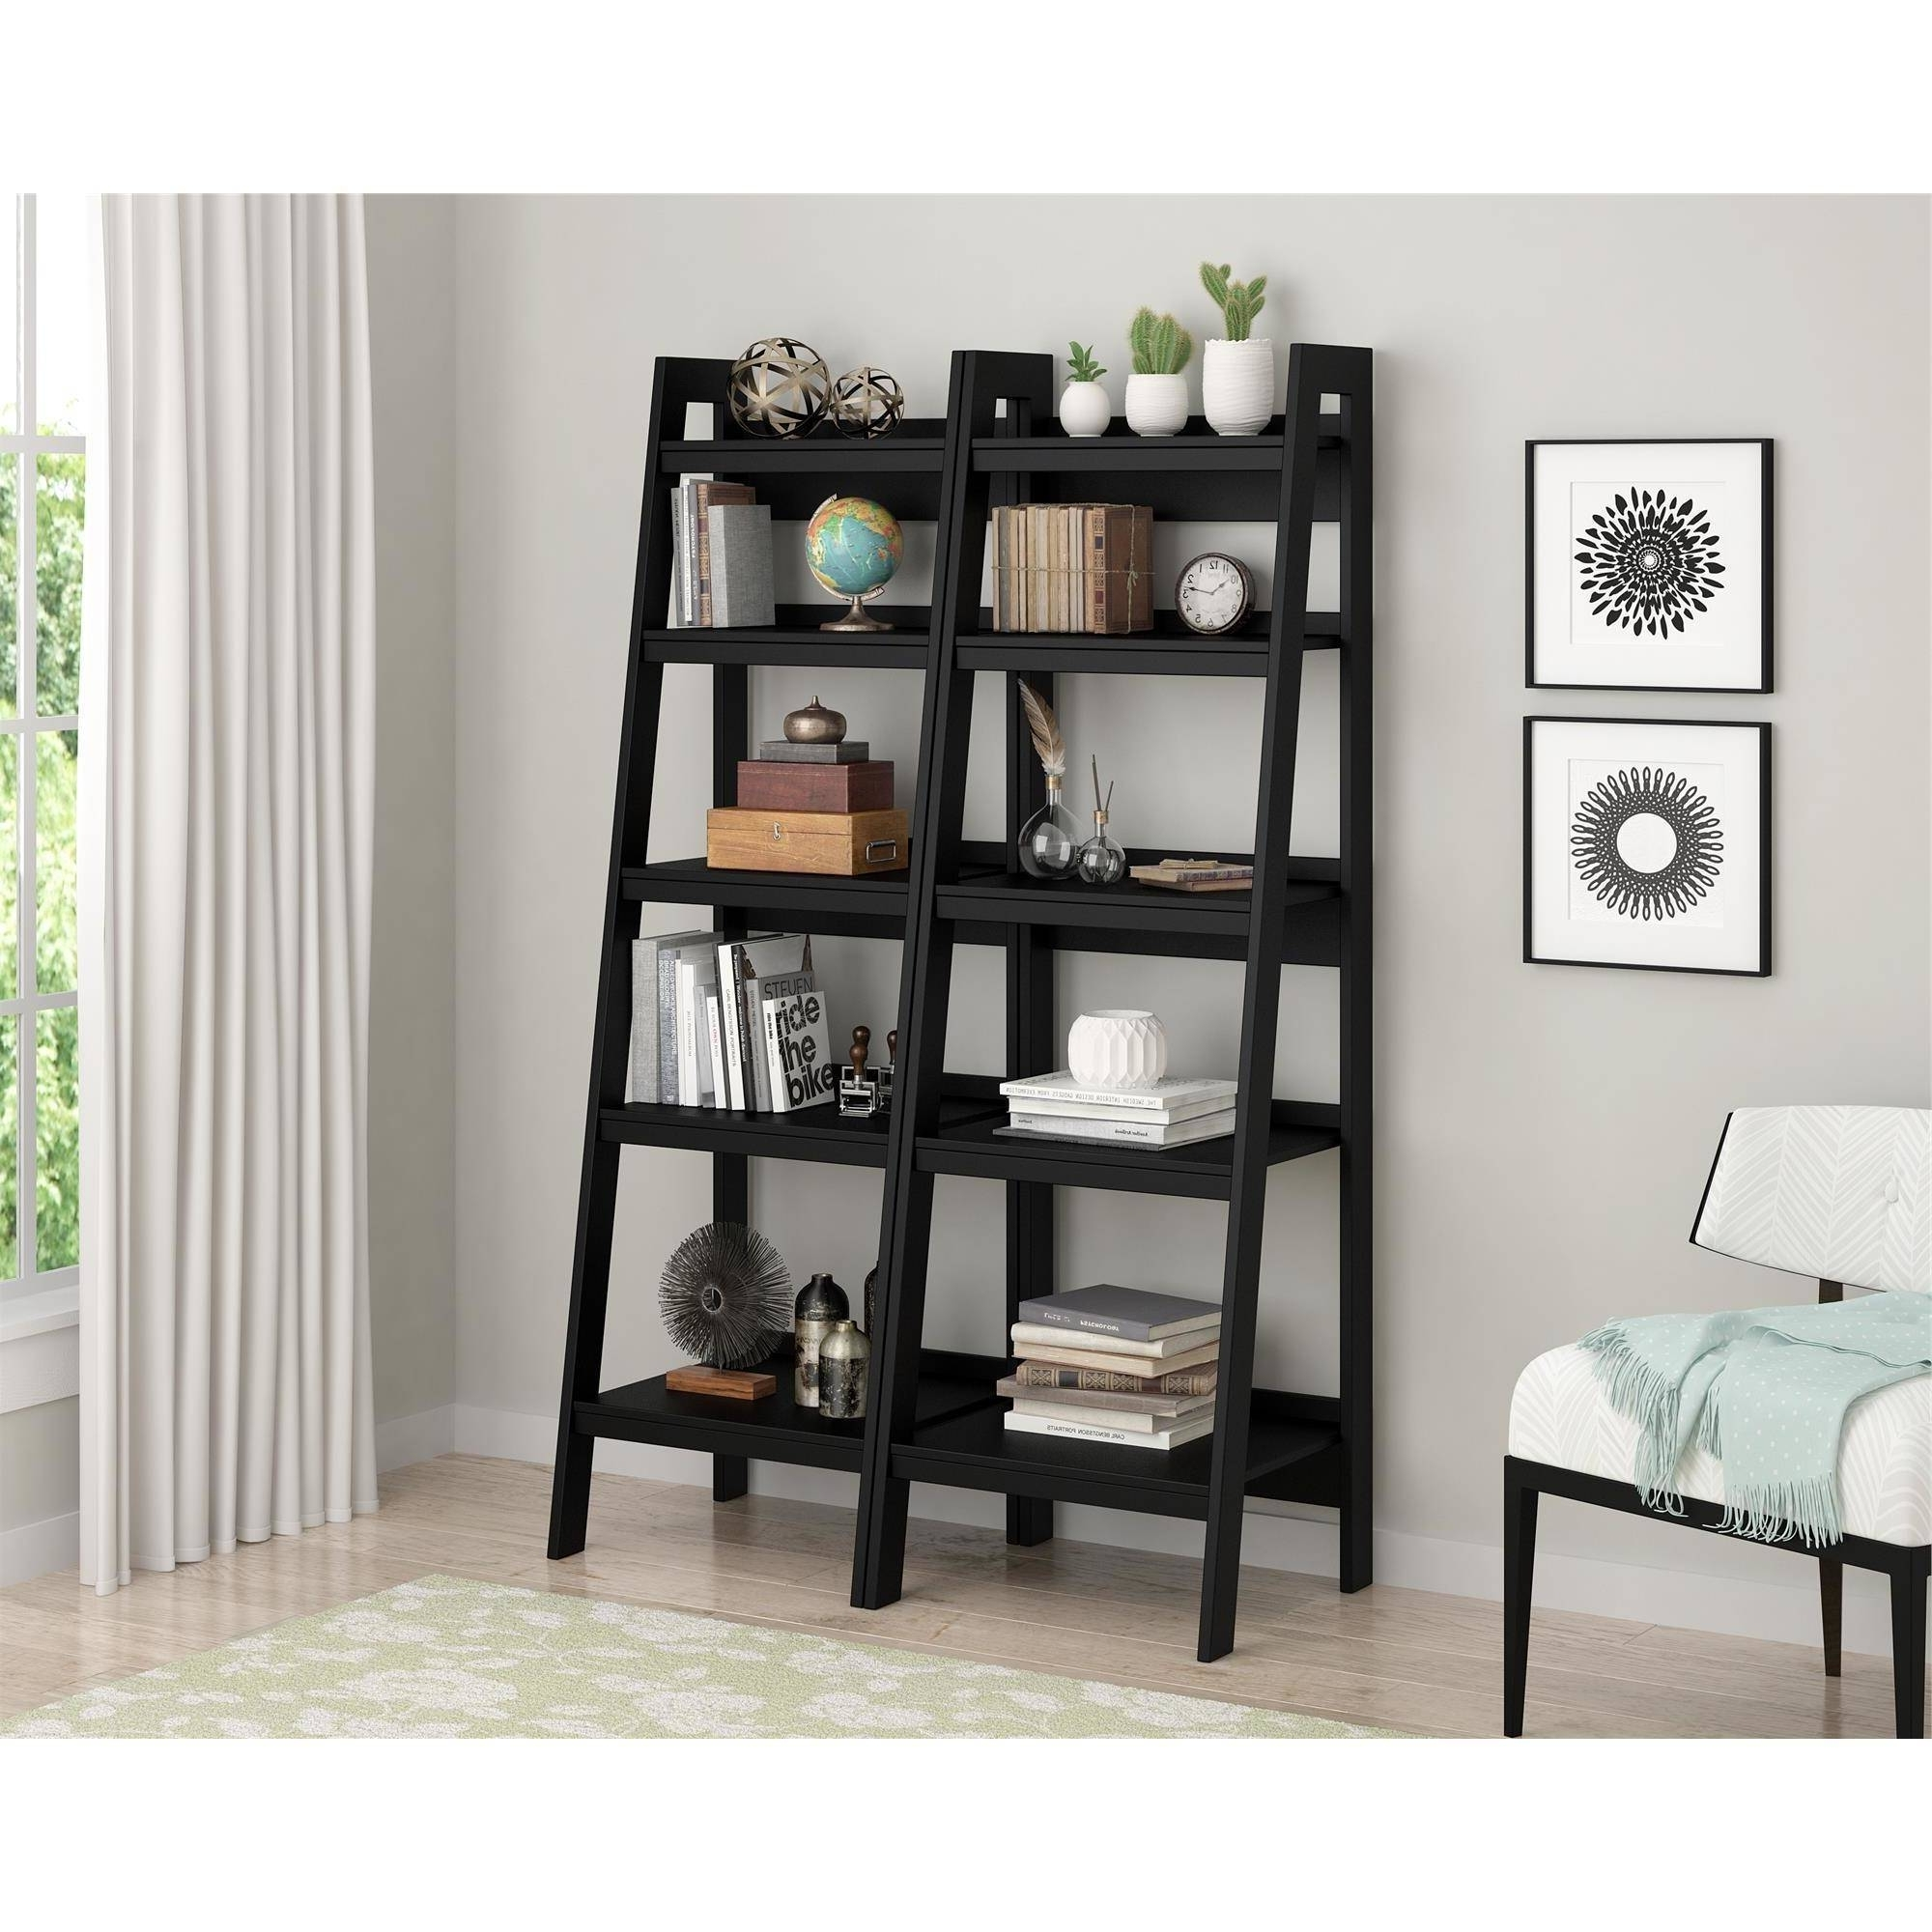 Ladder Bookcases With Drawers Regarding Well Liked Ladder Bookshelf With Drawers • Drawer Ideas (View 7 of 15)